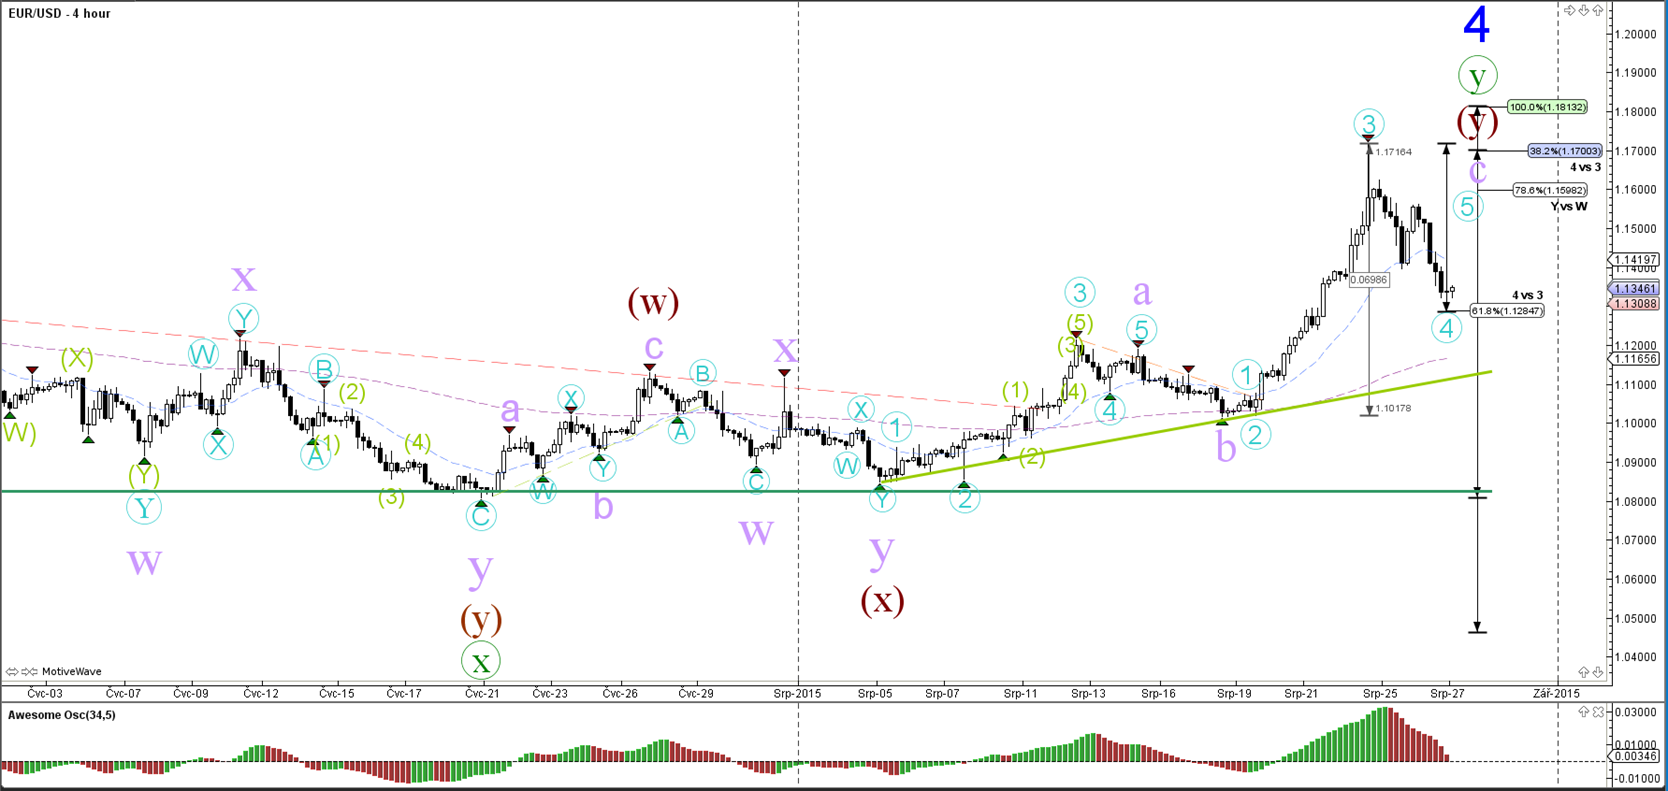 Wave Count afterward GBP/USD Dive under sustenance - http://www.fxnewscall.com/wave-count-afterward-gbpusd-dive-under-sustenance/1920806/